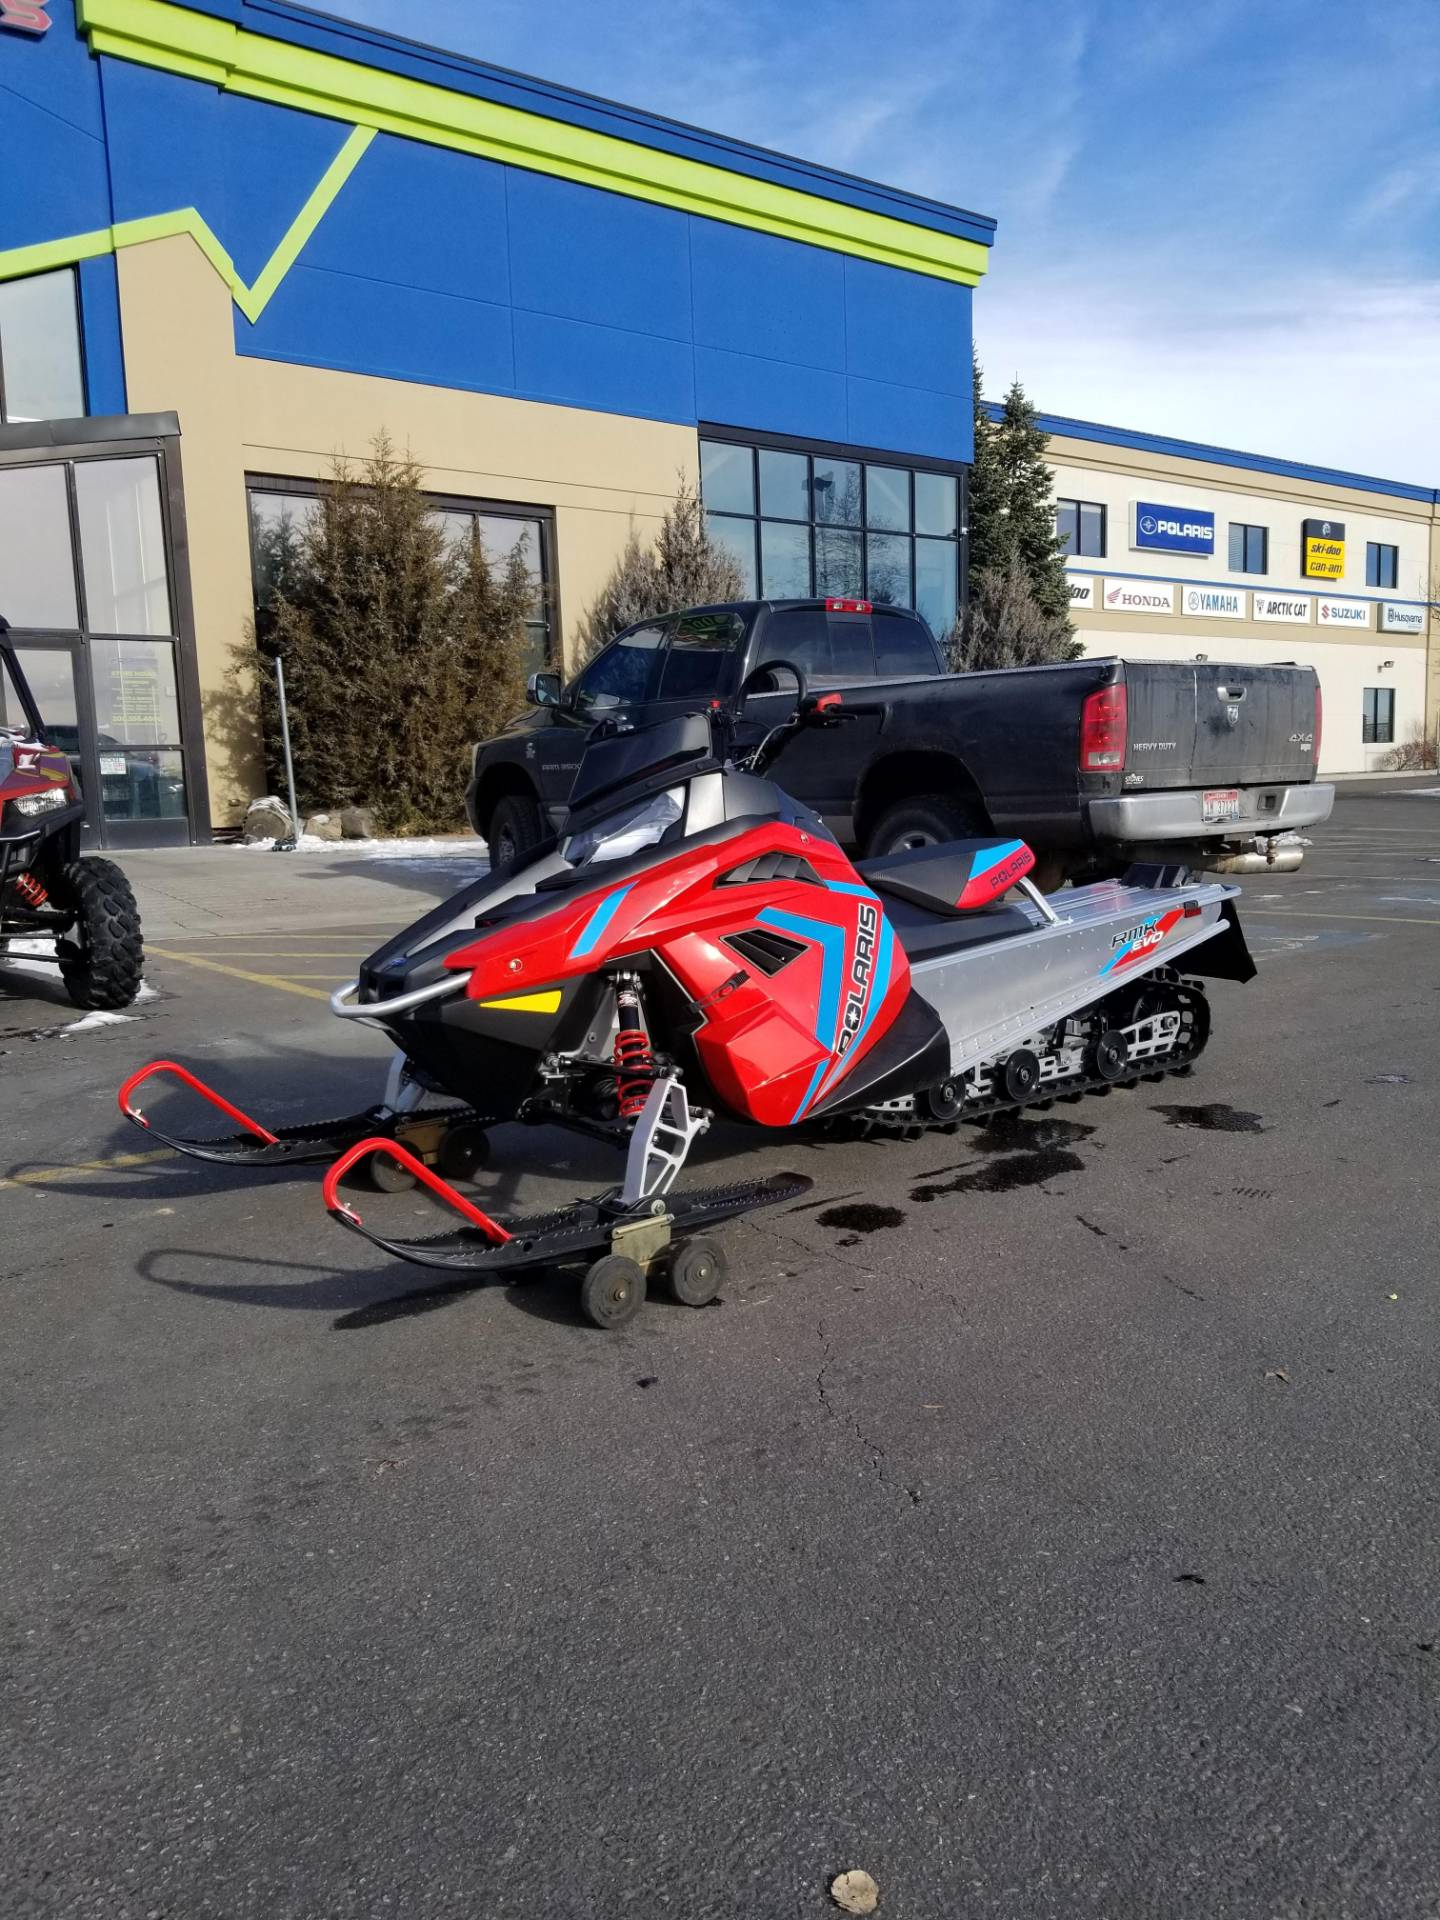 2020 Polaris 550 RMK EVO 144 ES in Rexburg, Idaho - Photo 2